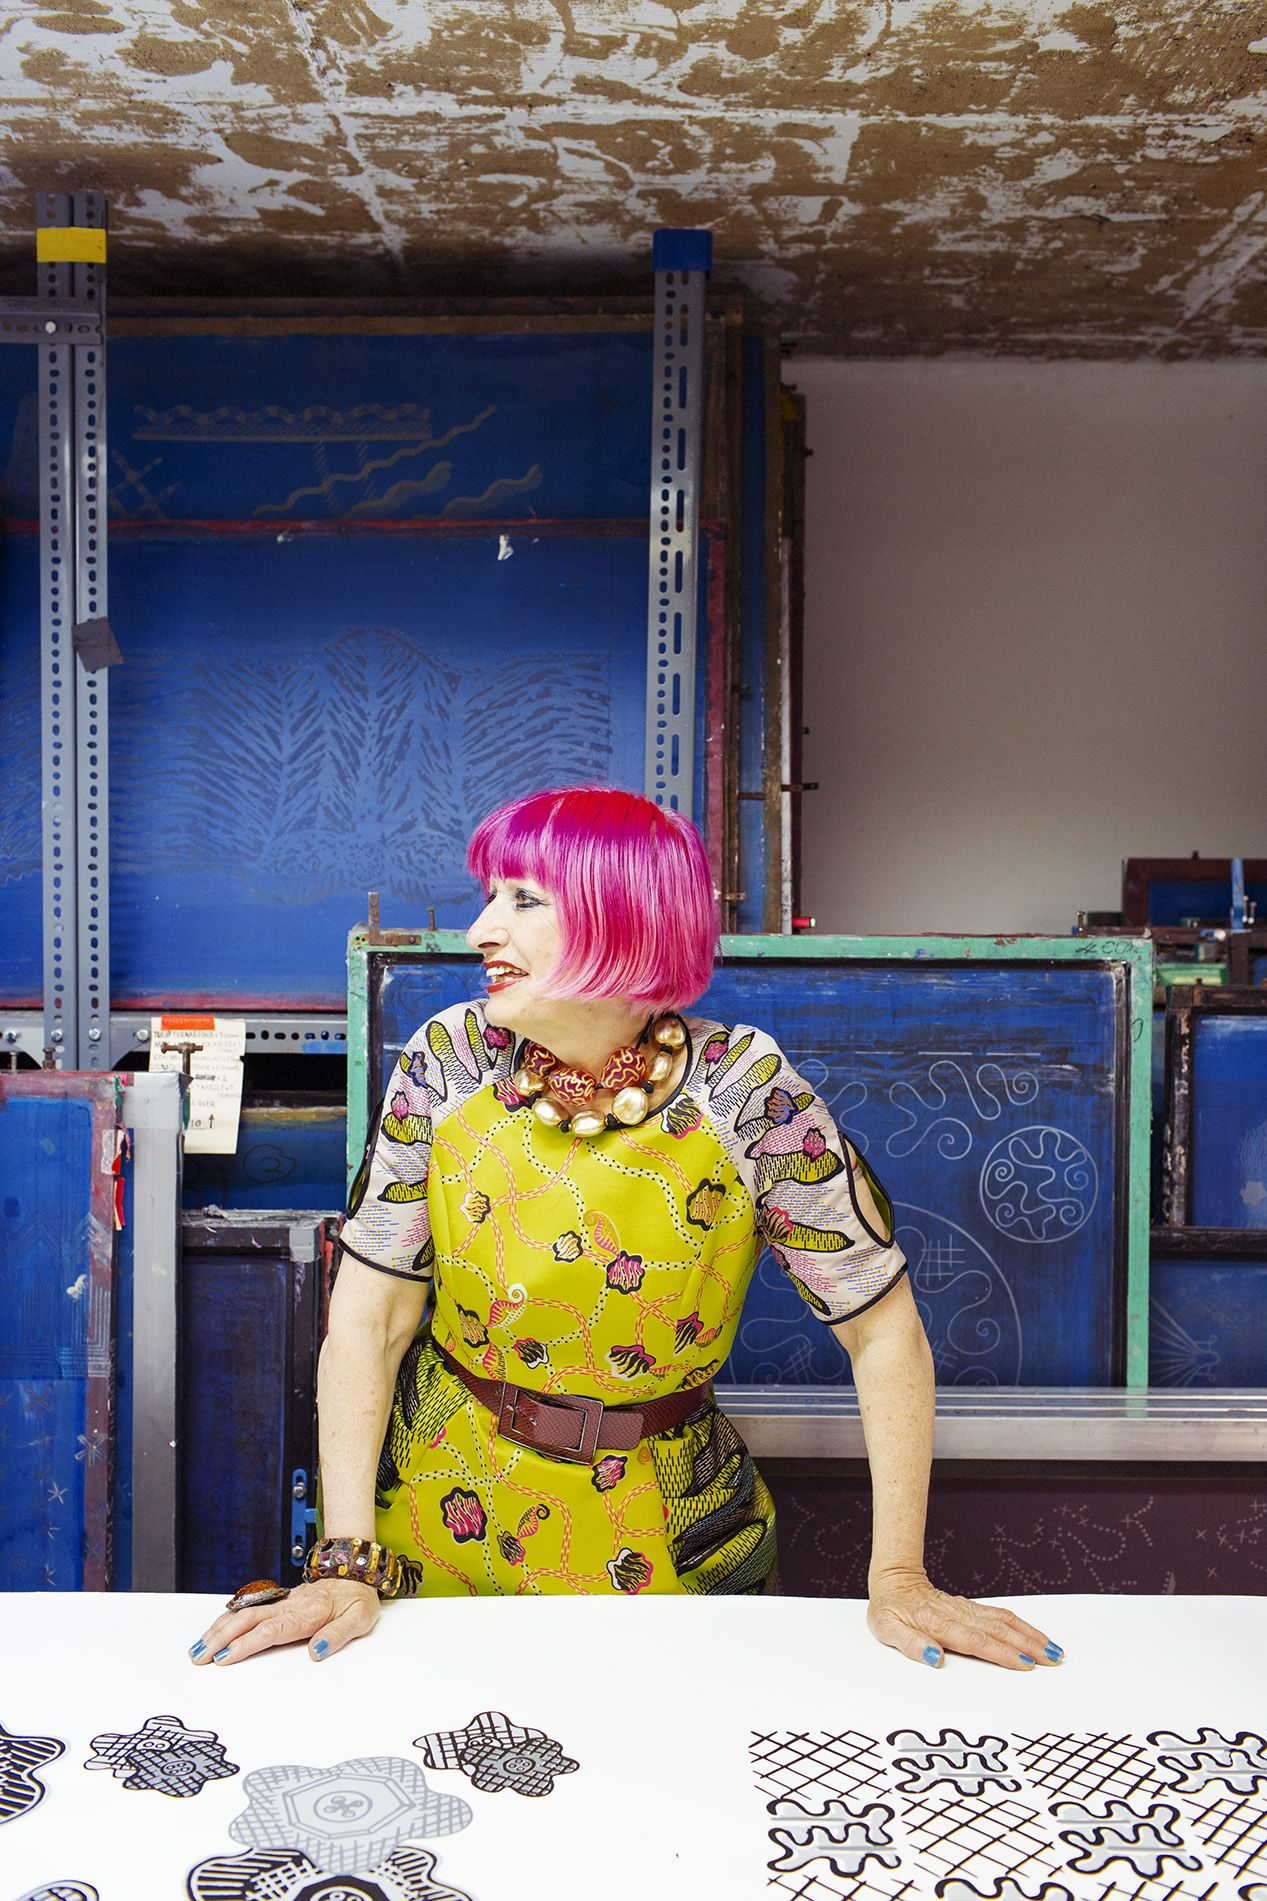 Zandra Rhodes U2013 Fashion Designer At Home And Her Studio In London « The  Selby.